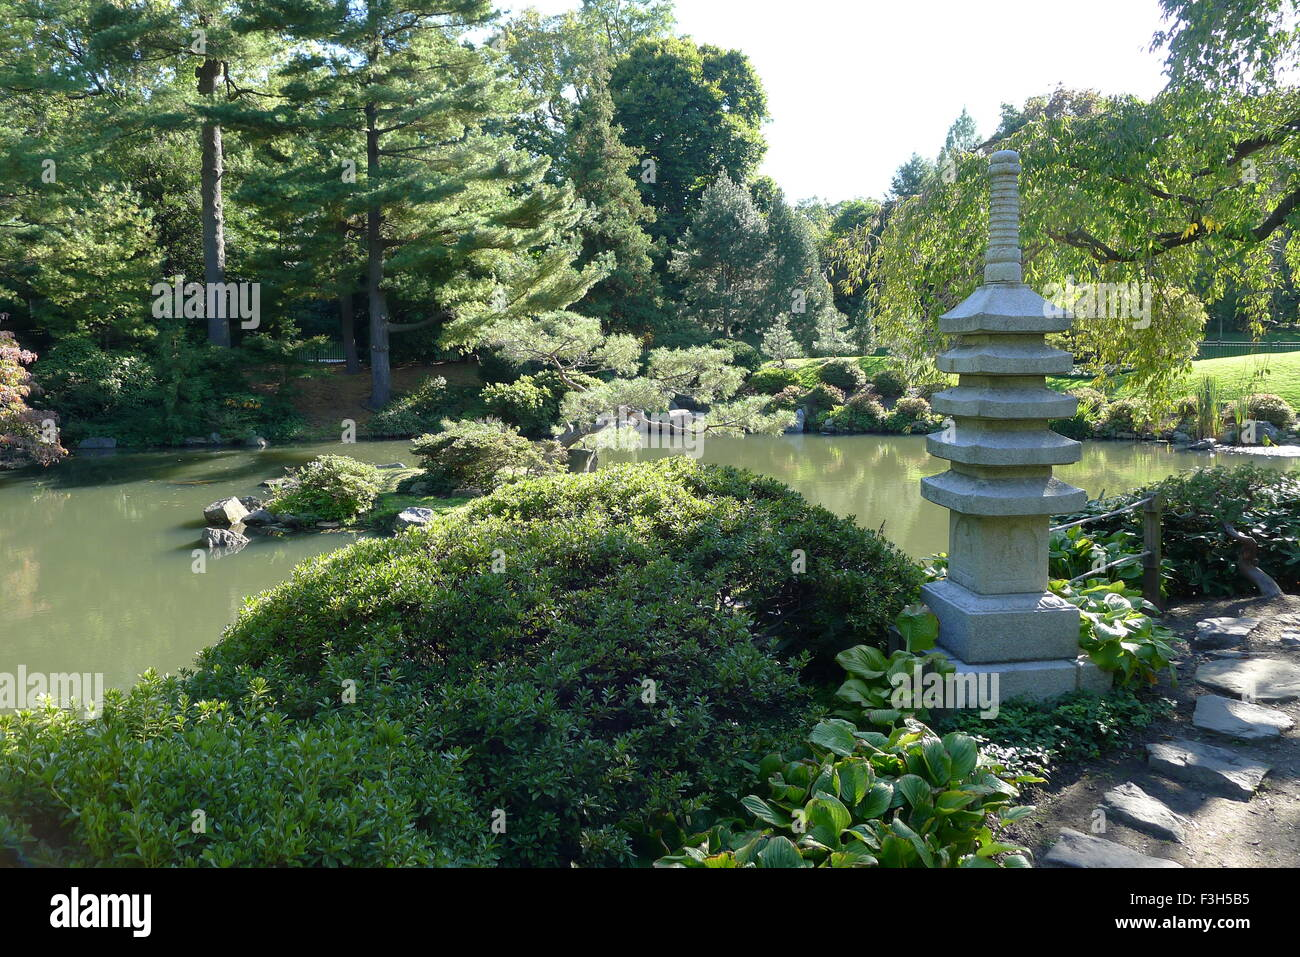 Stone Pagoda And Japanese Garden In Fairmount Park   Stock Image